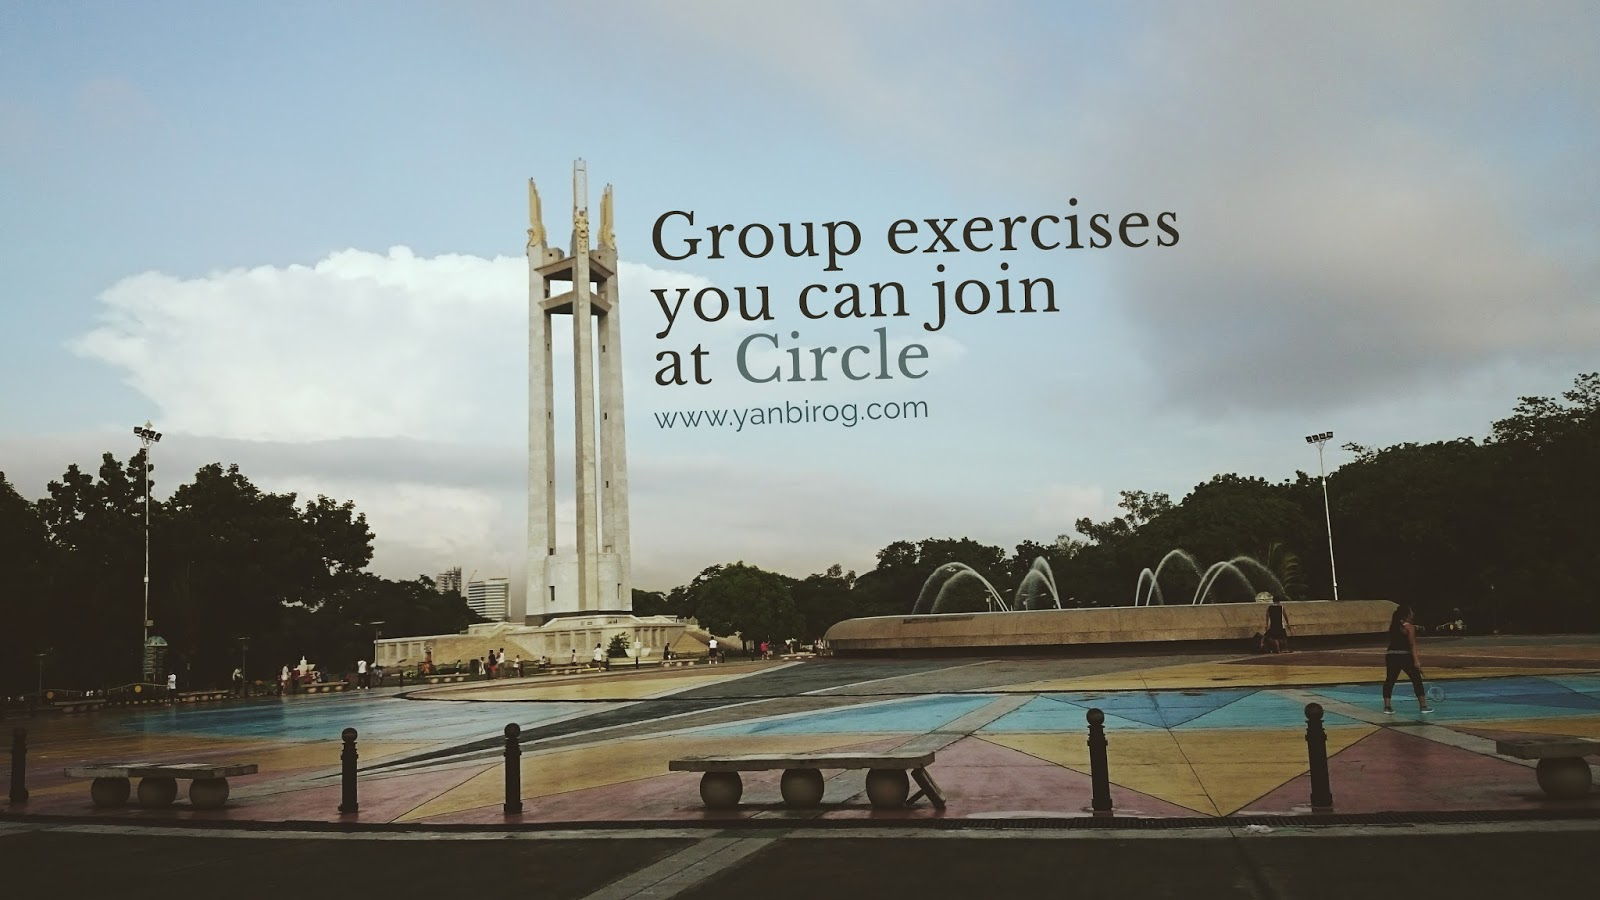 Group exercises you can join at Circle